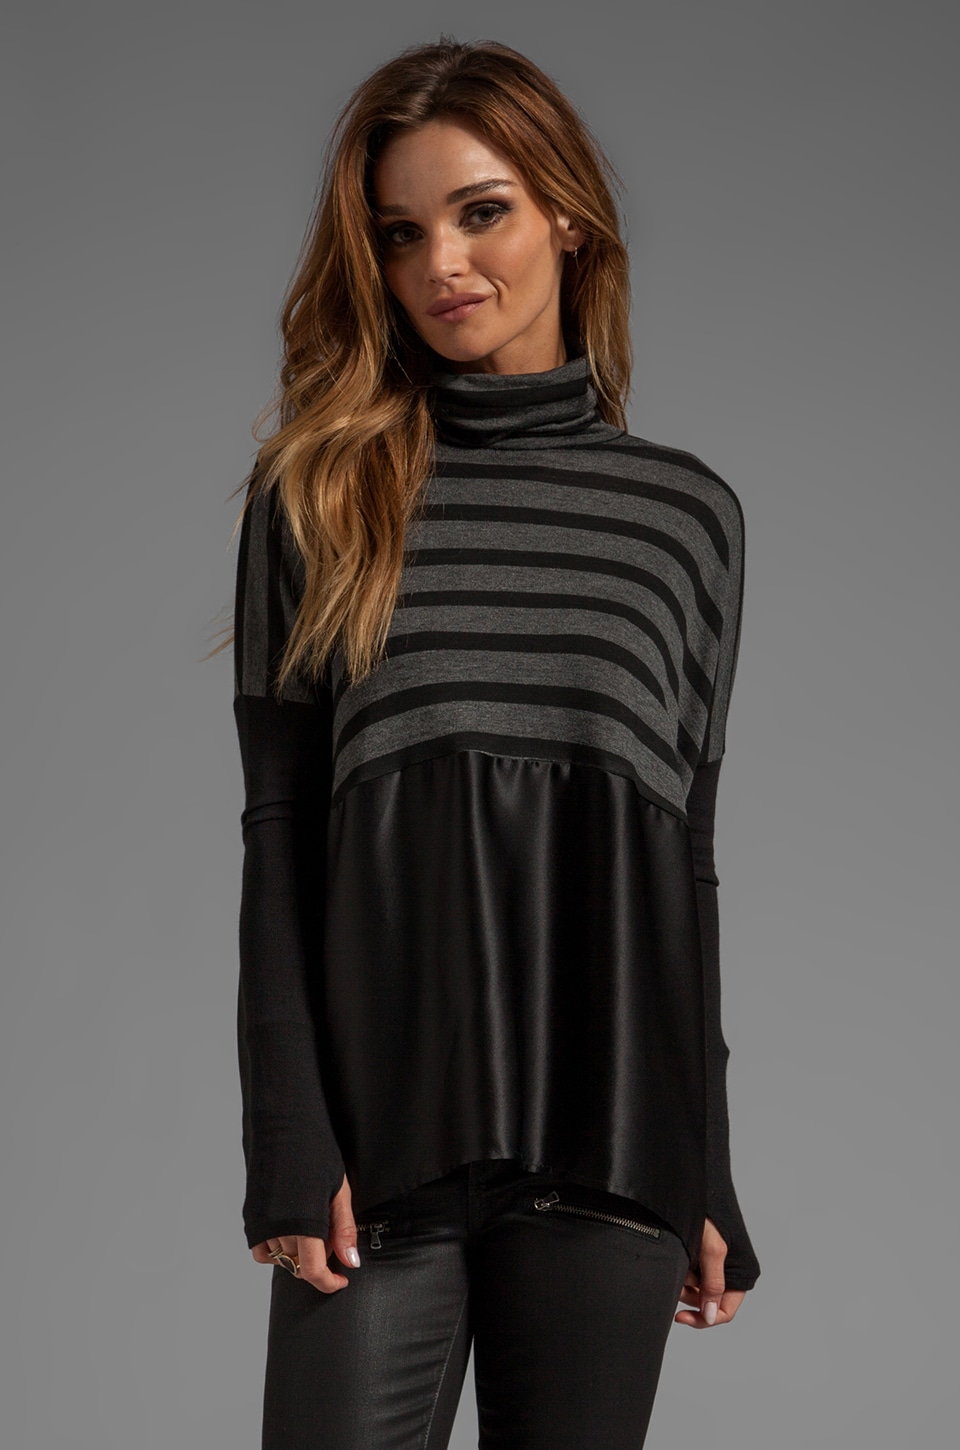 dolan Turtleneck with Thumbholes in Black/Charcoal